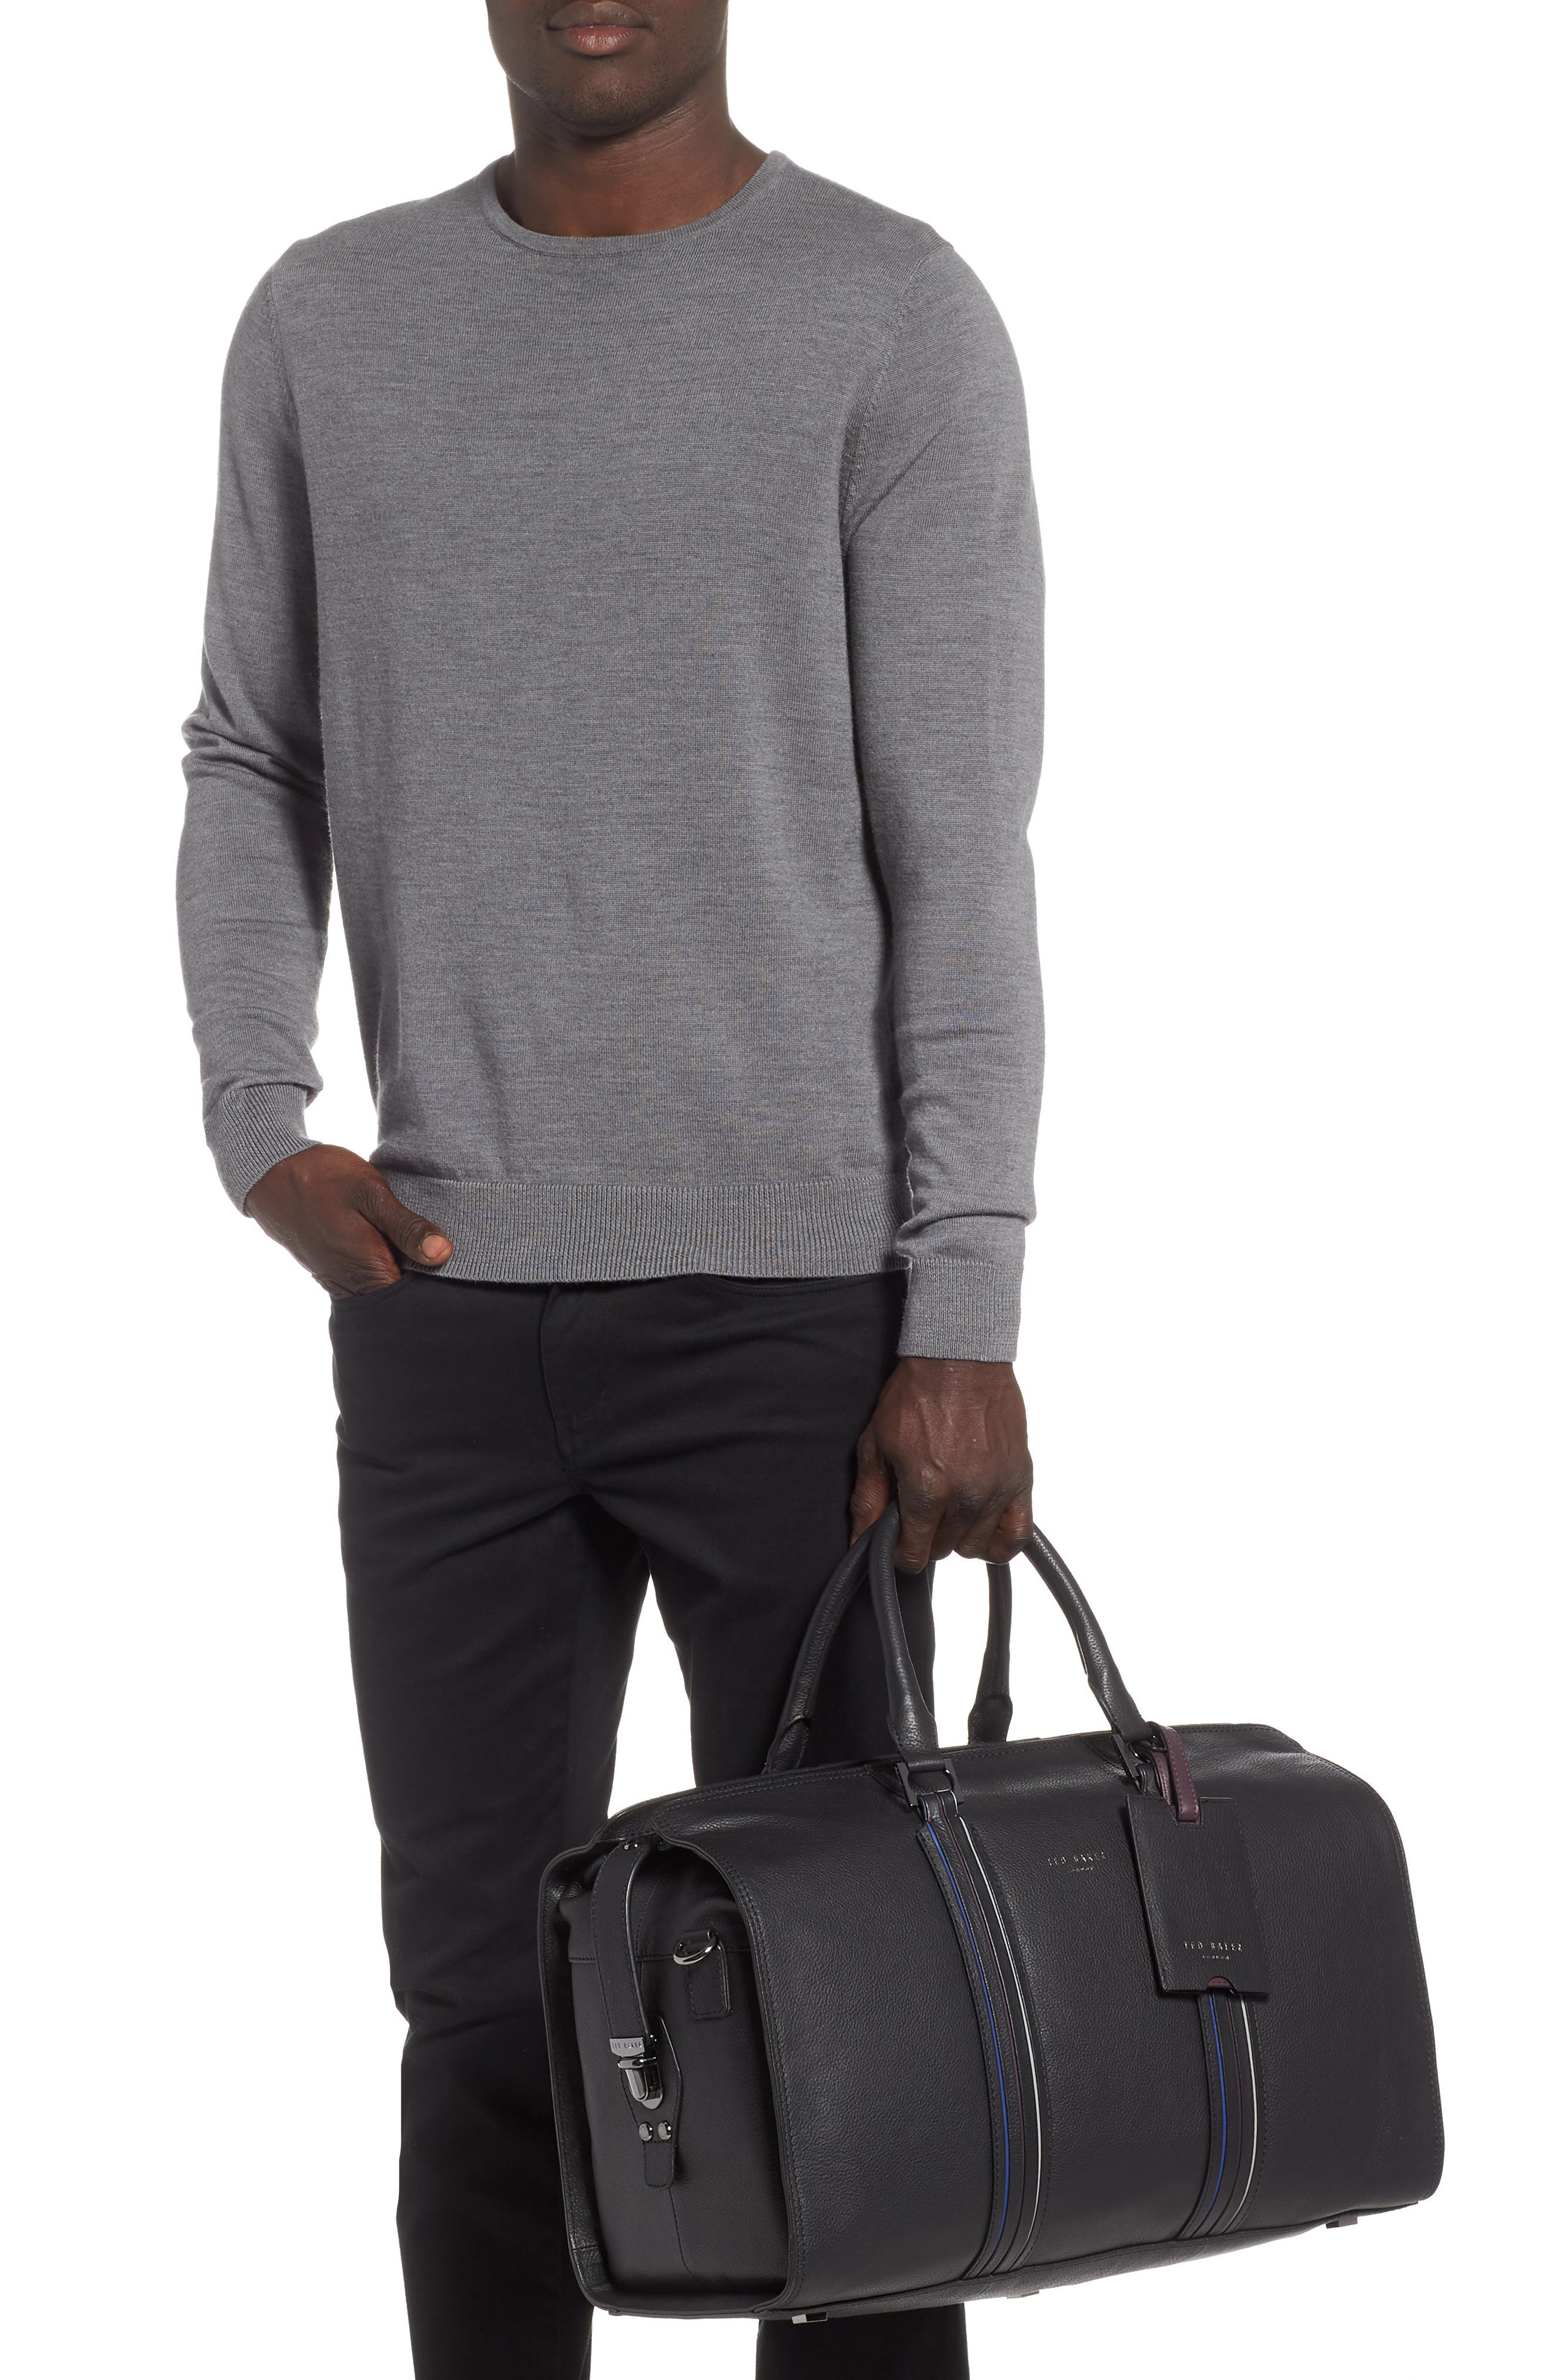 TED BAKER LONDON,                             Geeves Stripe Leather Duffel Bag,                             Alternate thumbnail 2, color,                             001